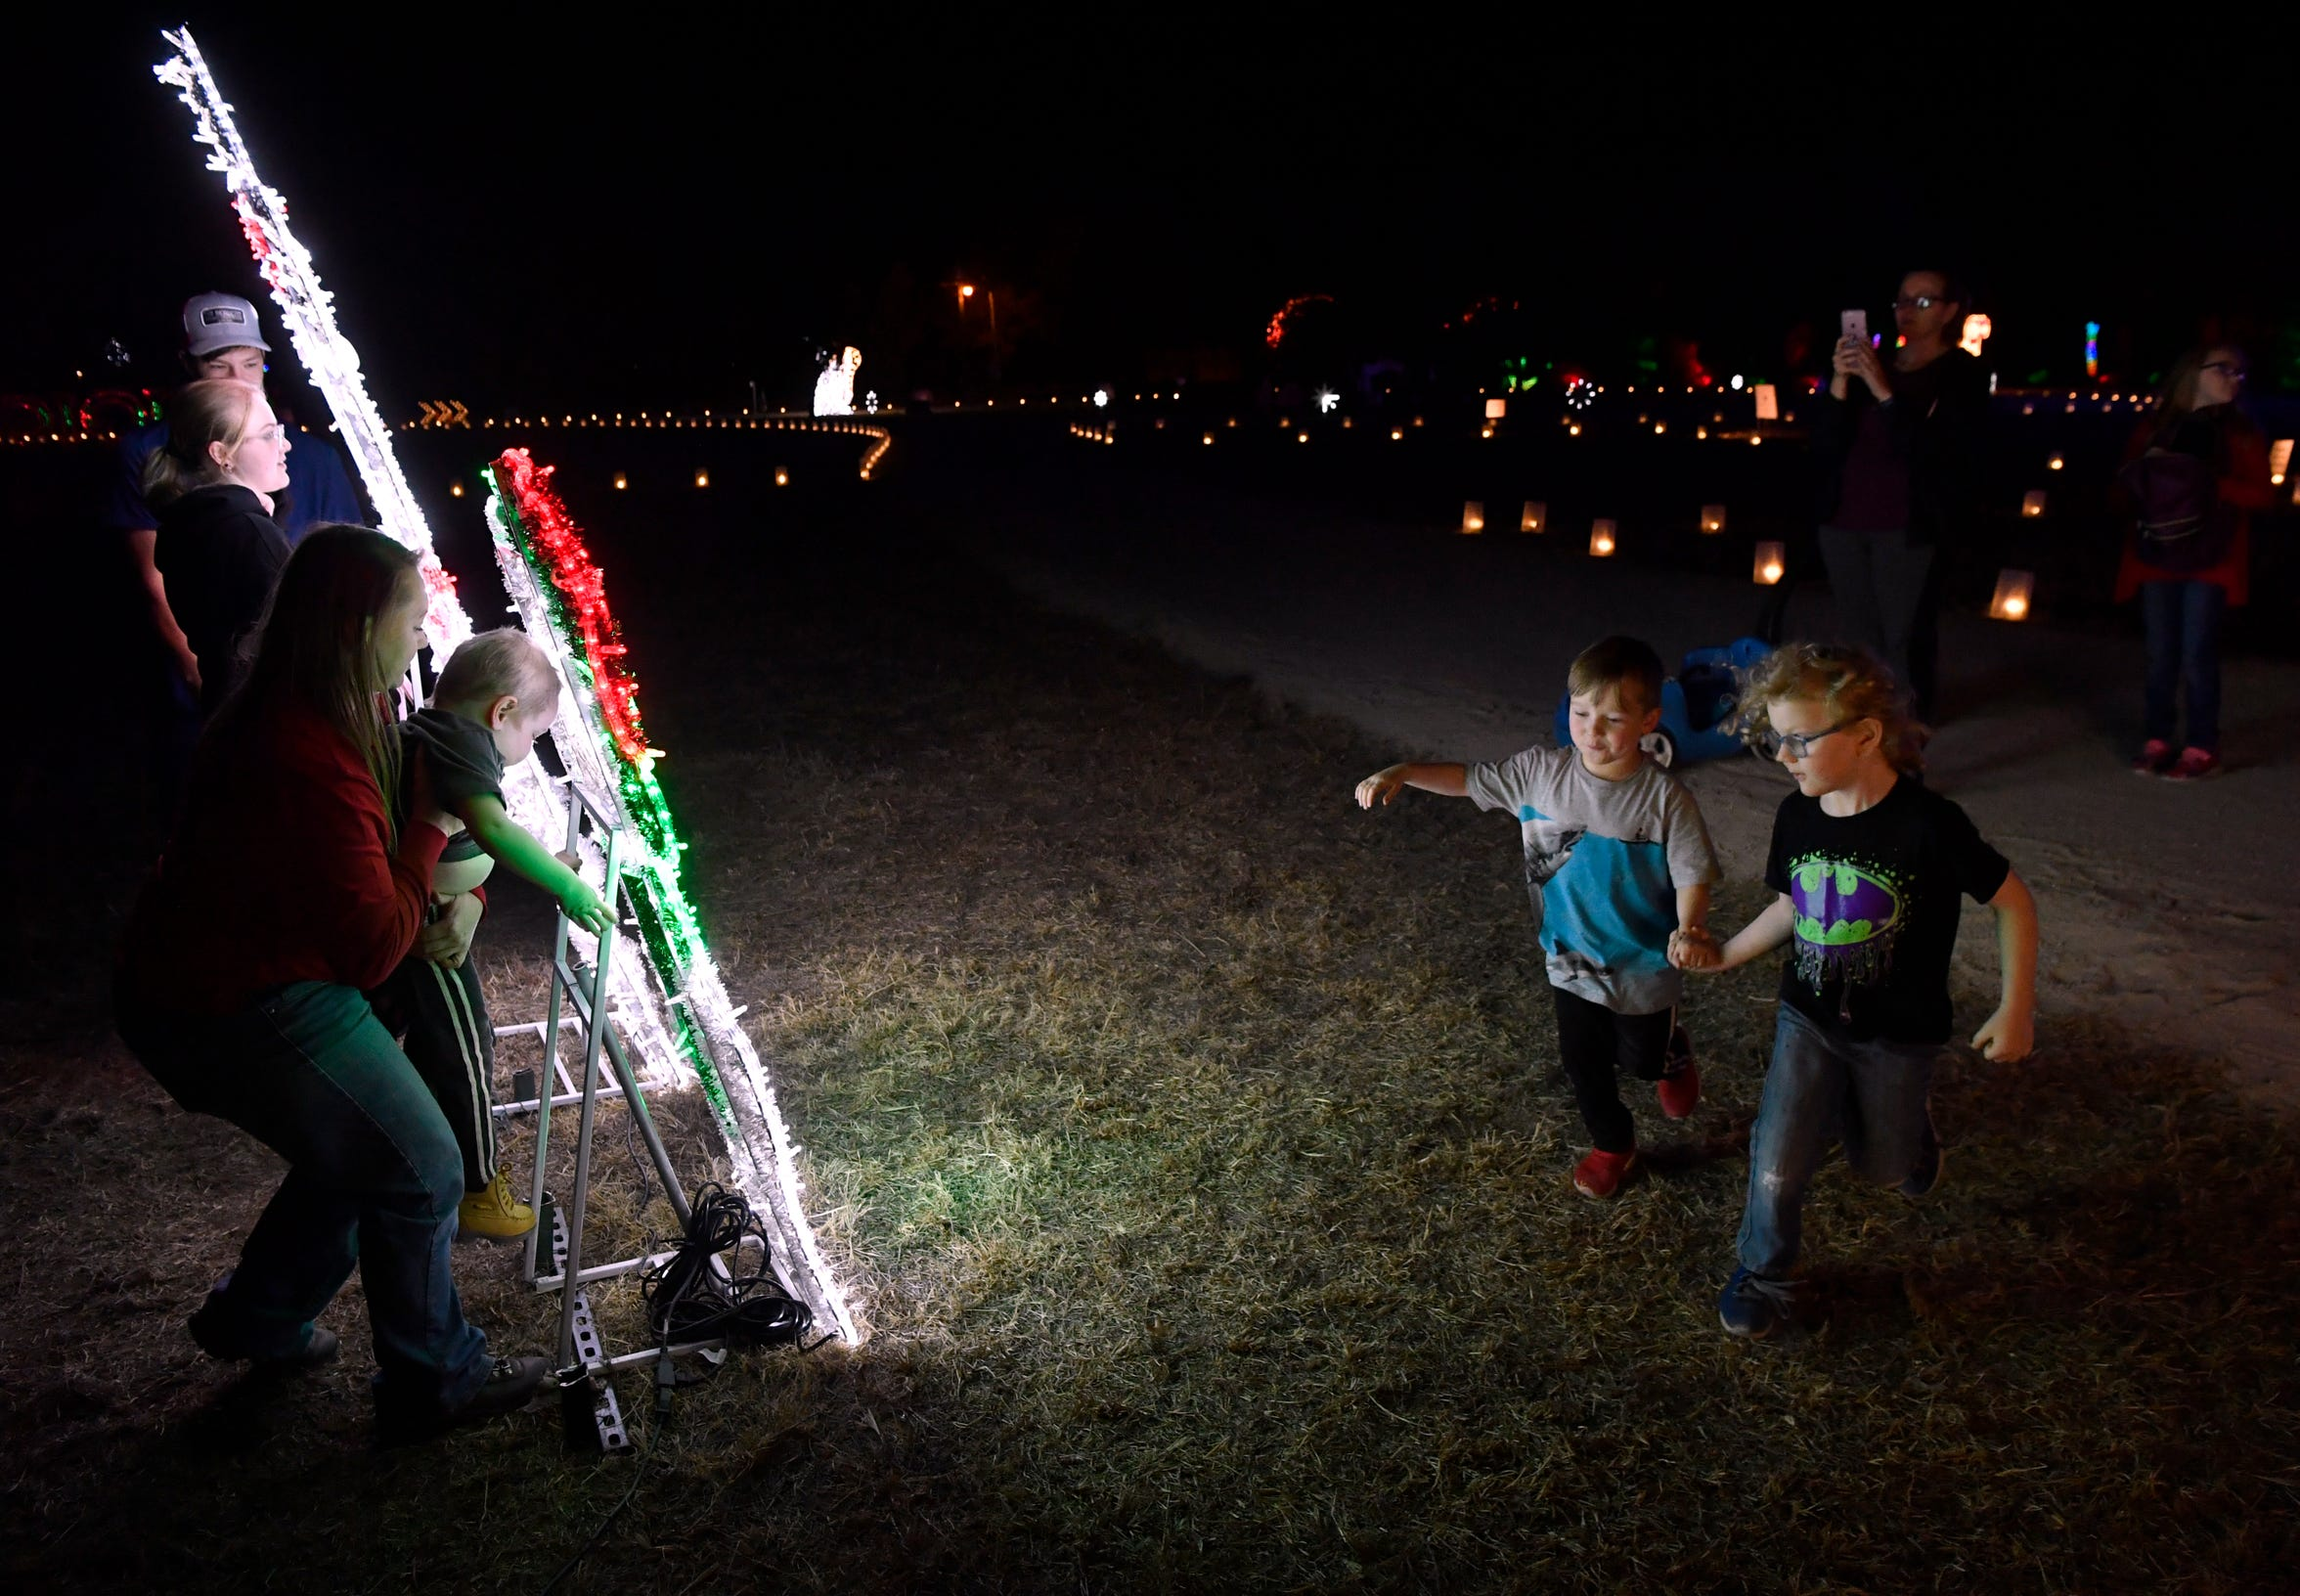 Matthew Keeton, 5, leads his cousin Chandler Batchelor, 4, to the rear of lighted cutouts Nov. 19  at Winter Lightfest.